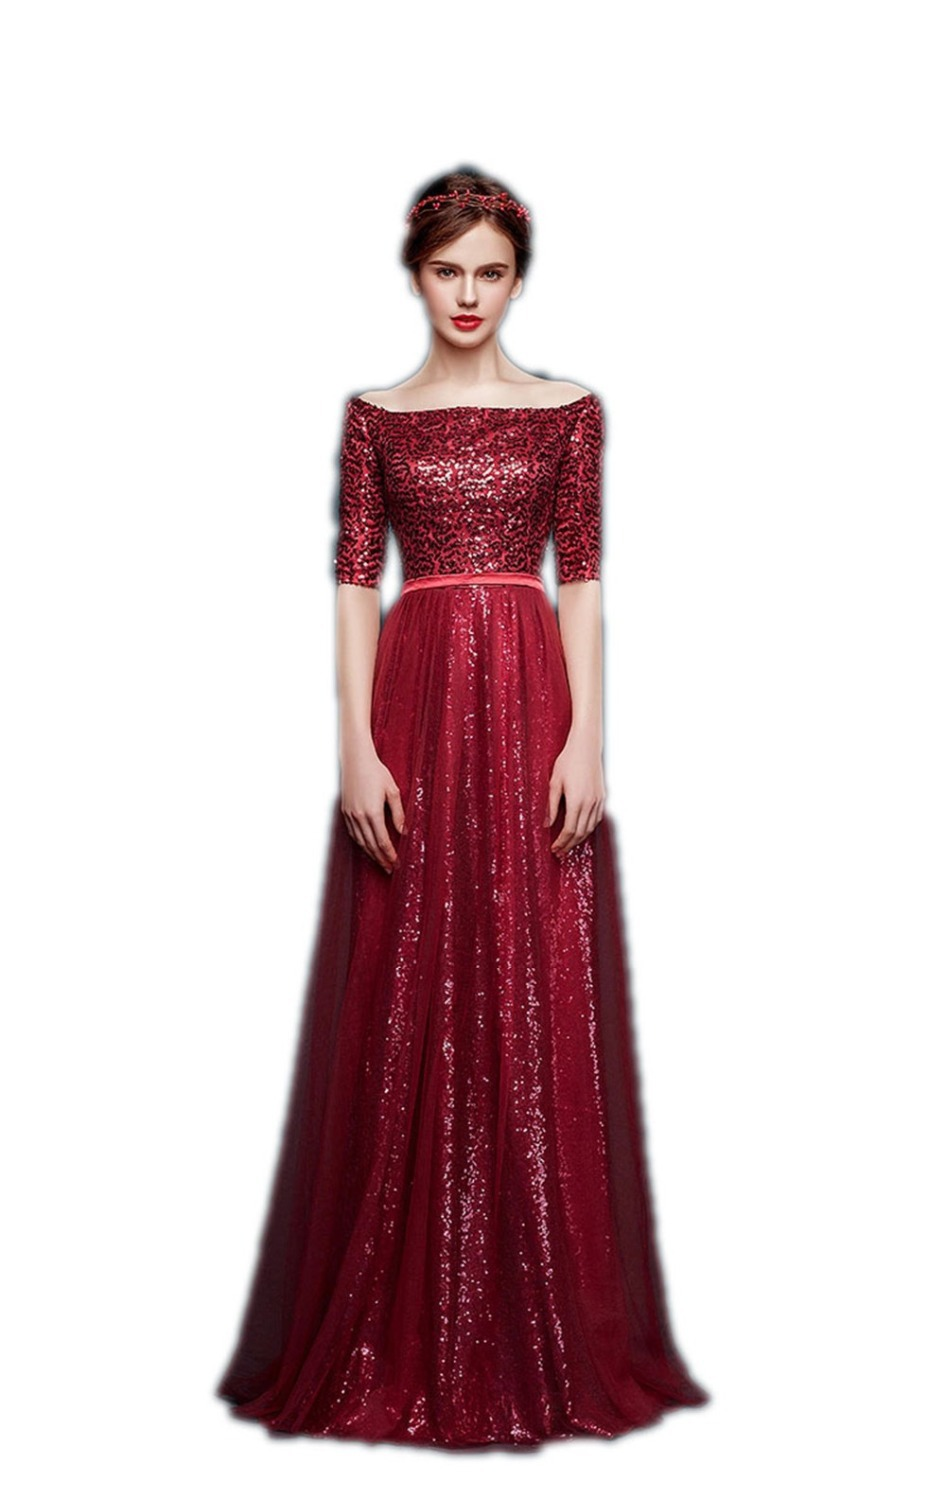 a062e6eaabd 2015 Custom Made Wine Red Long Evening Dress Gown Sequin Bodice Half Sleeve  Off Shoulder-in Evening Dresses from Weddings   Events on Aliexpress.com ...